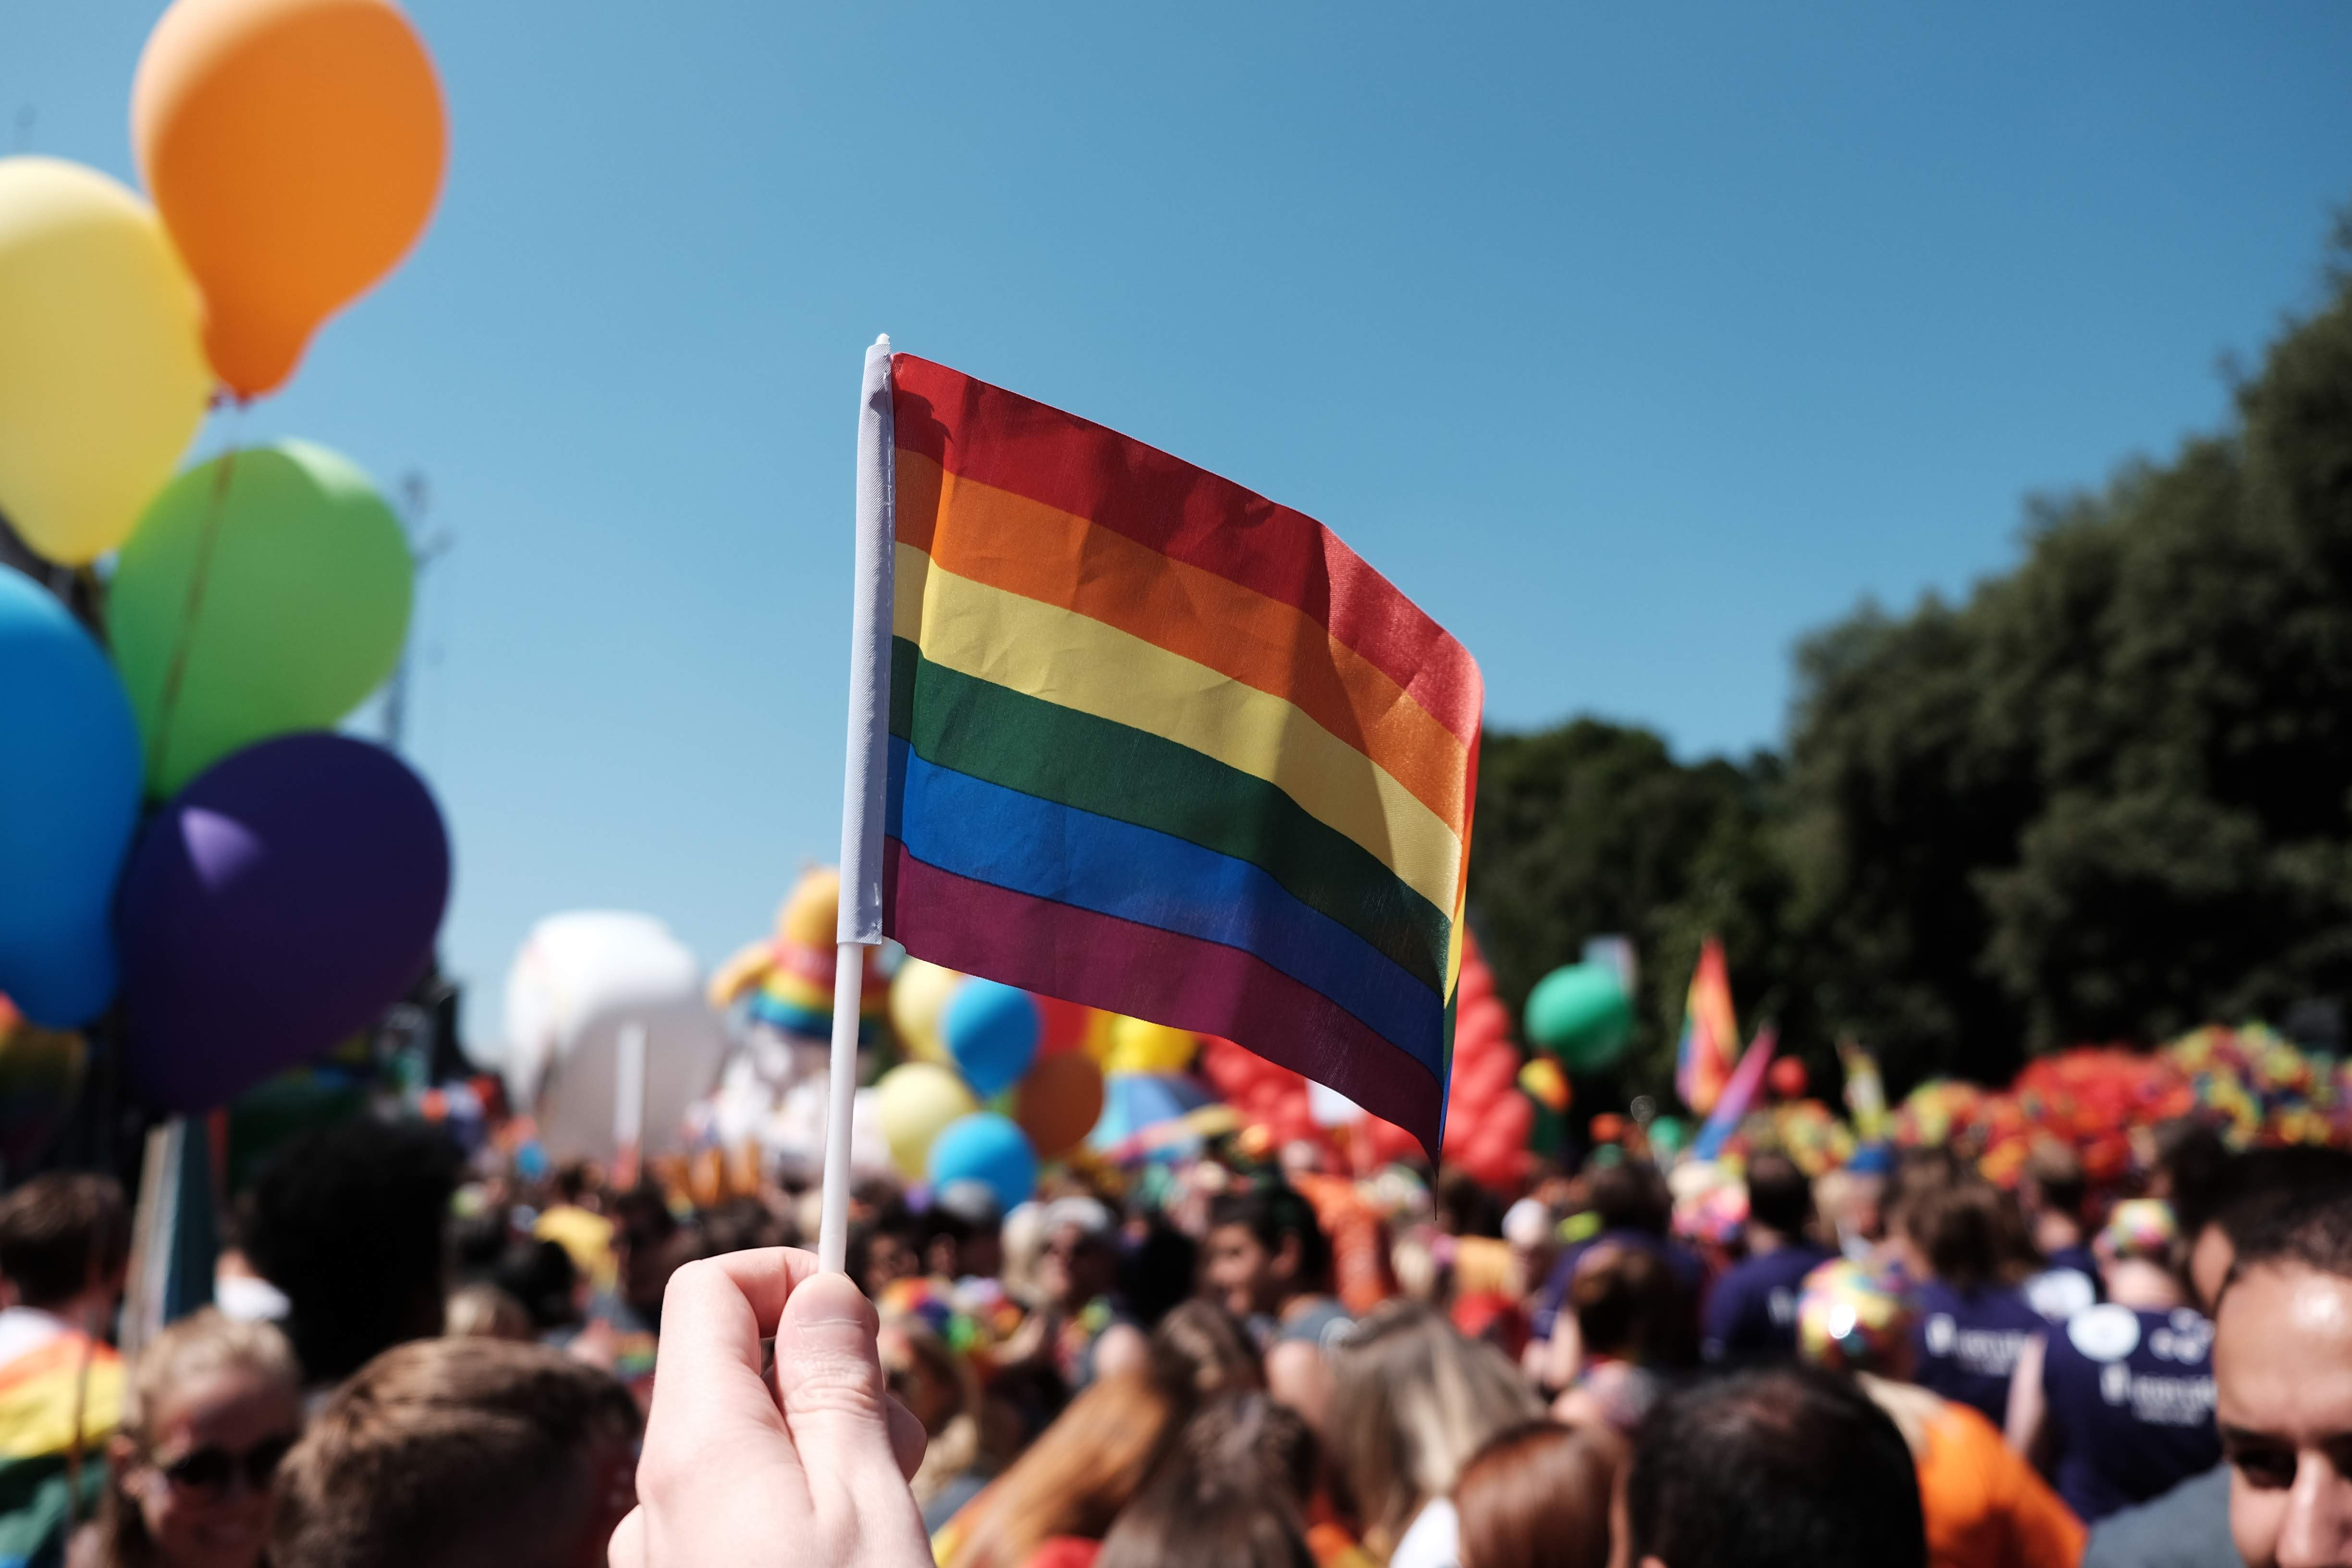 Hiring Gay: 3 Lessons to Recruiting Fellow LGBTQ+ Employees